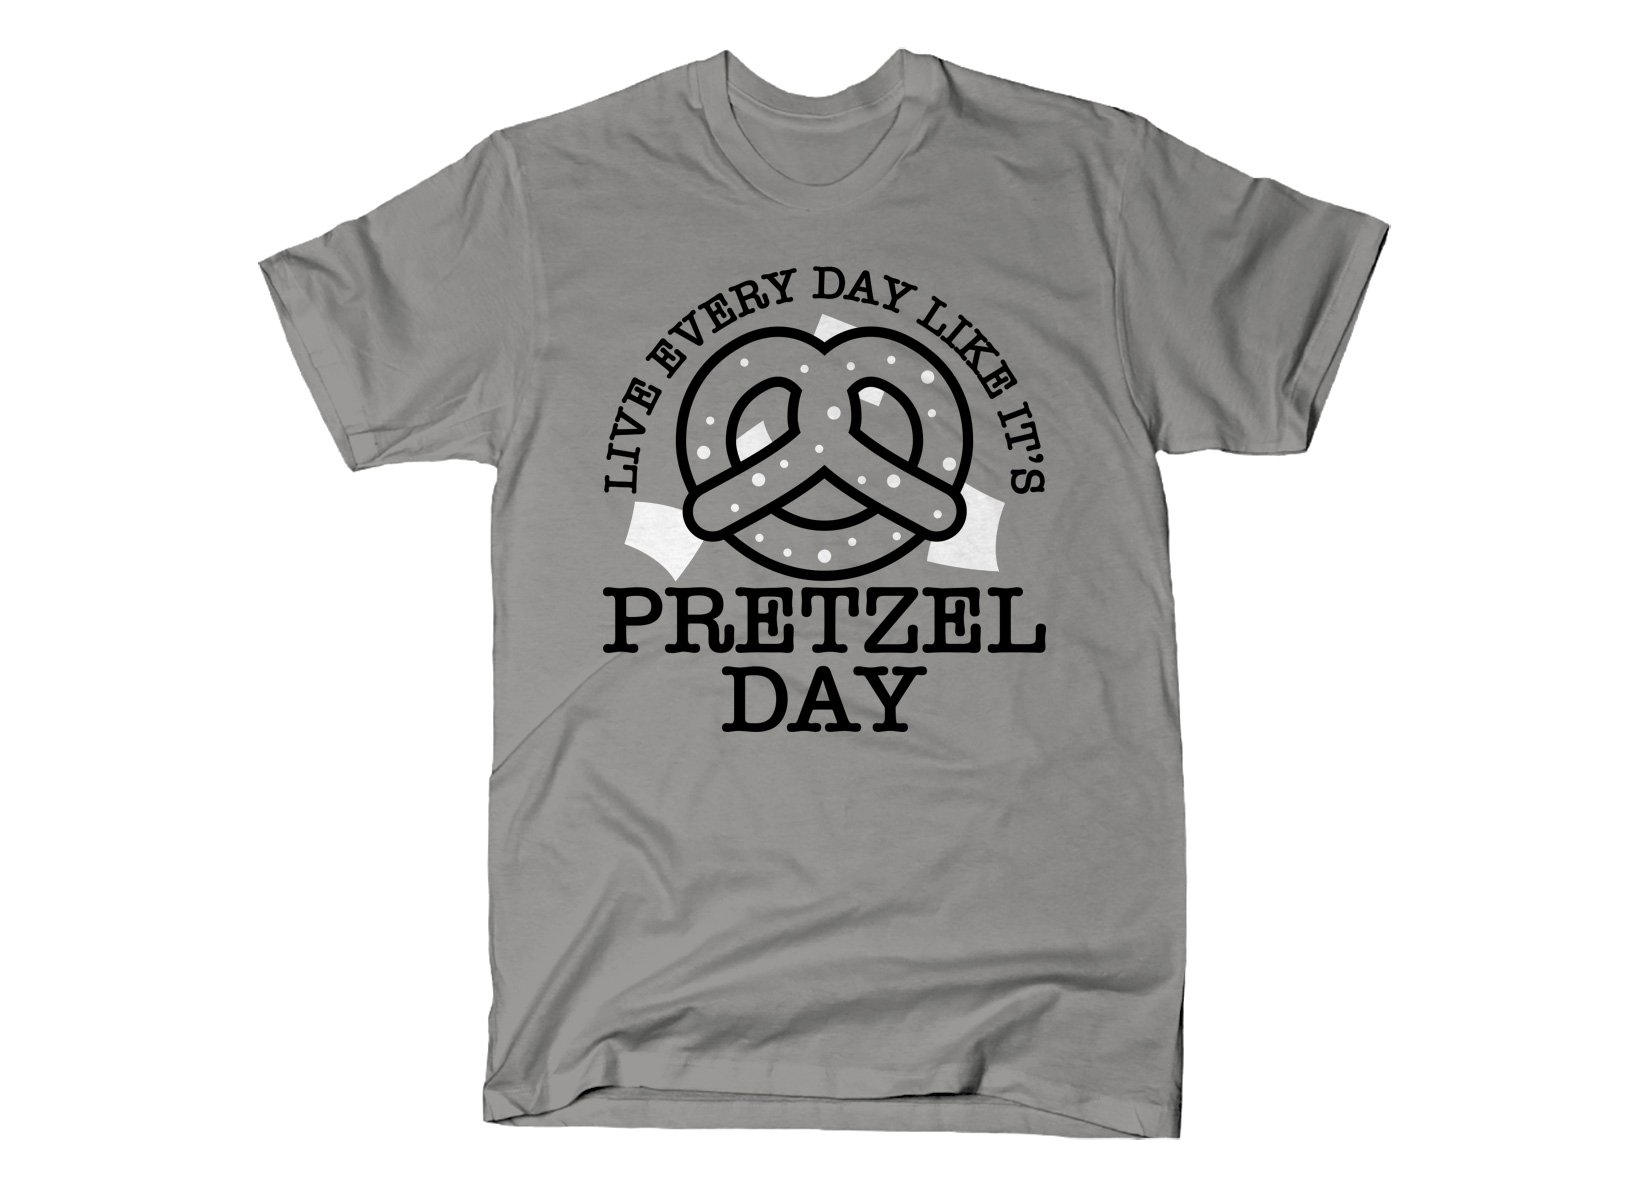 Live Every Day Like It's Pretzel Day on Mens T-Shirt